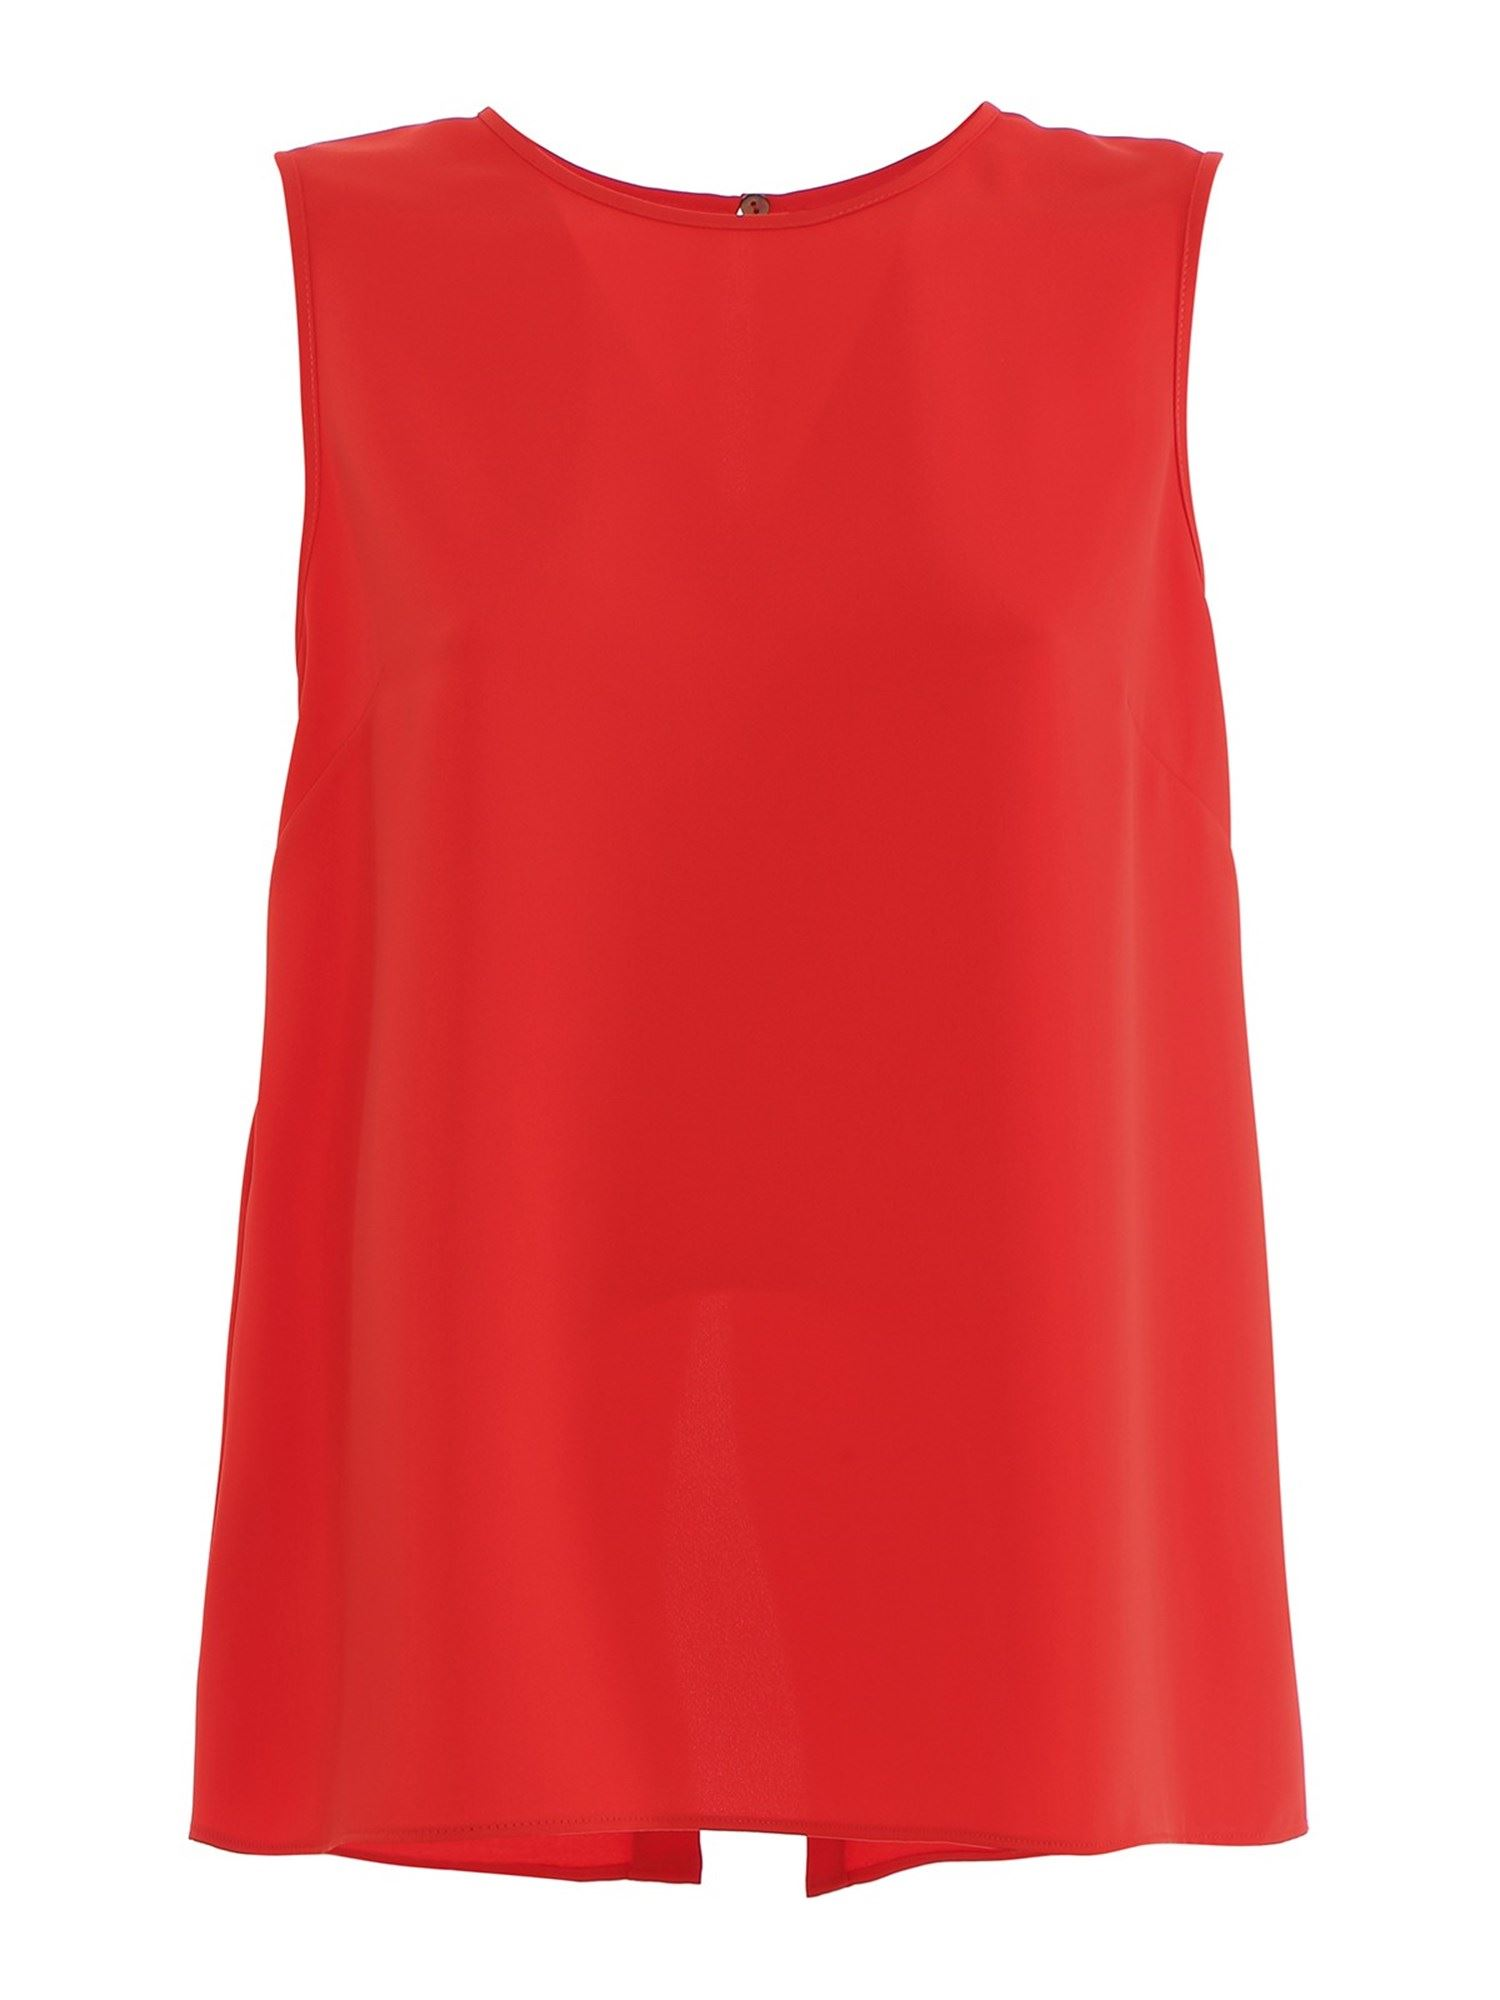 P.a.r.o.s.h. Cady Top In Red